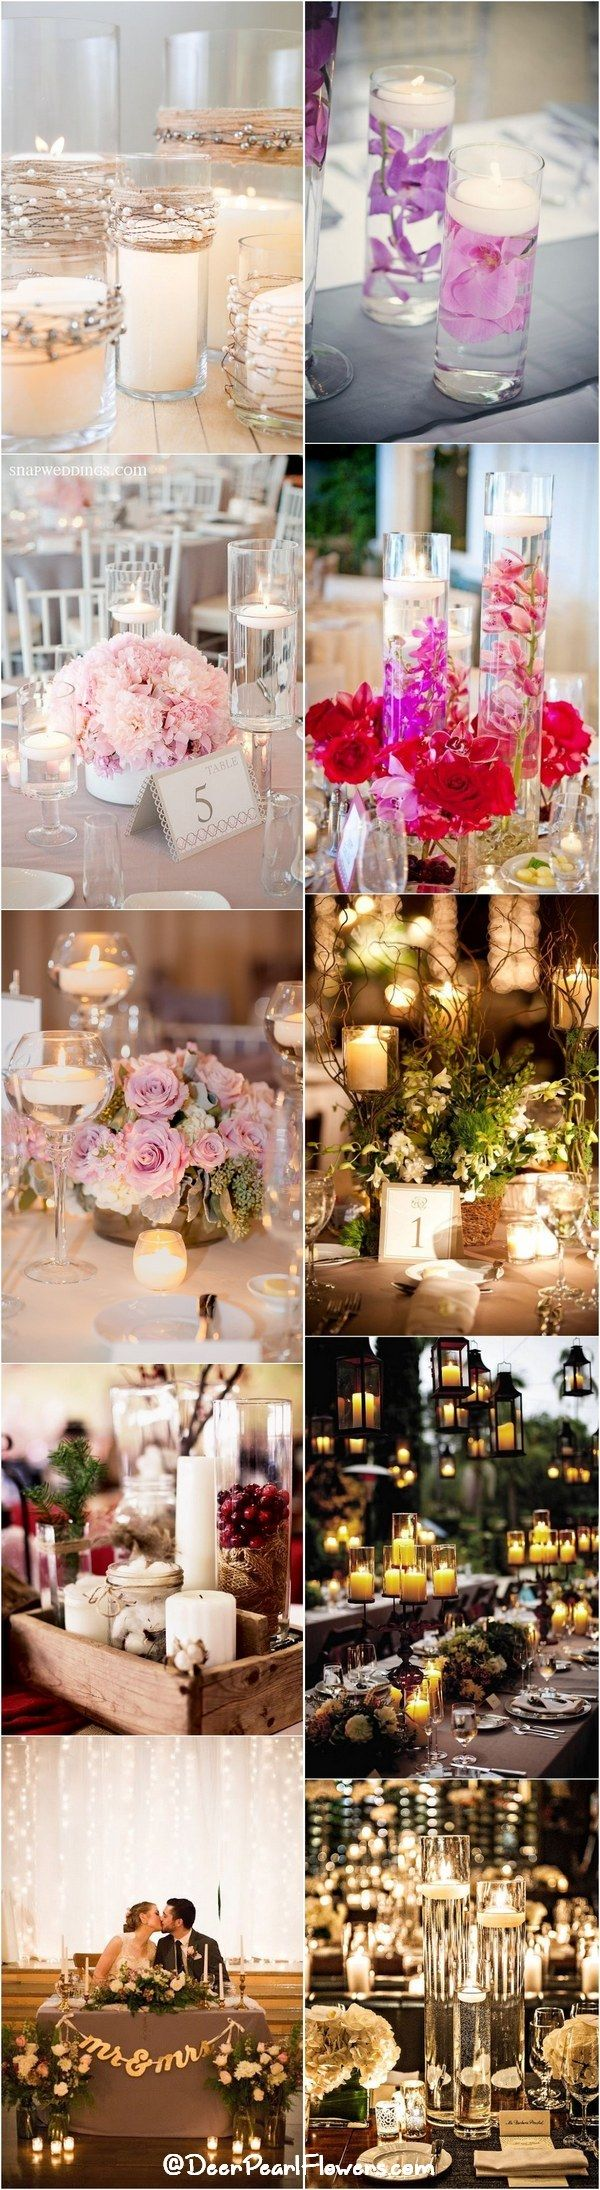 Romantic Candle Wedding Centerpiece Ideas / http://www.deerpearlflowers.com/wedding-ideas-using-candles/